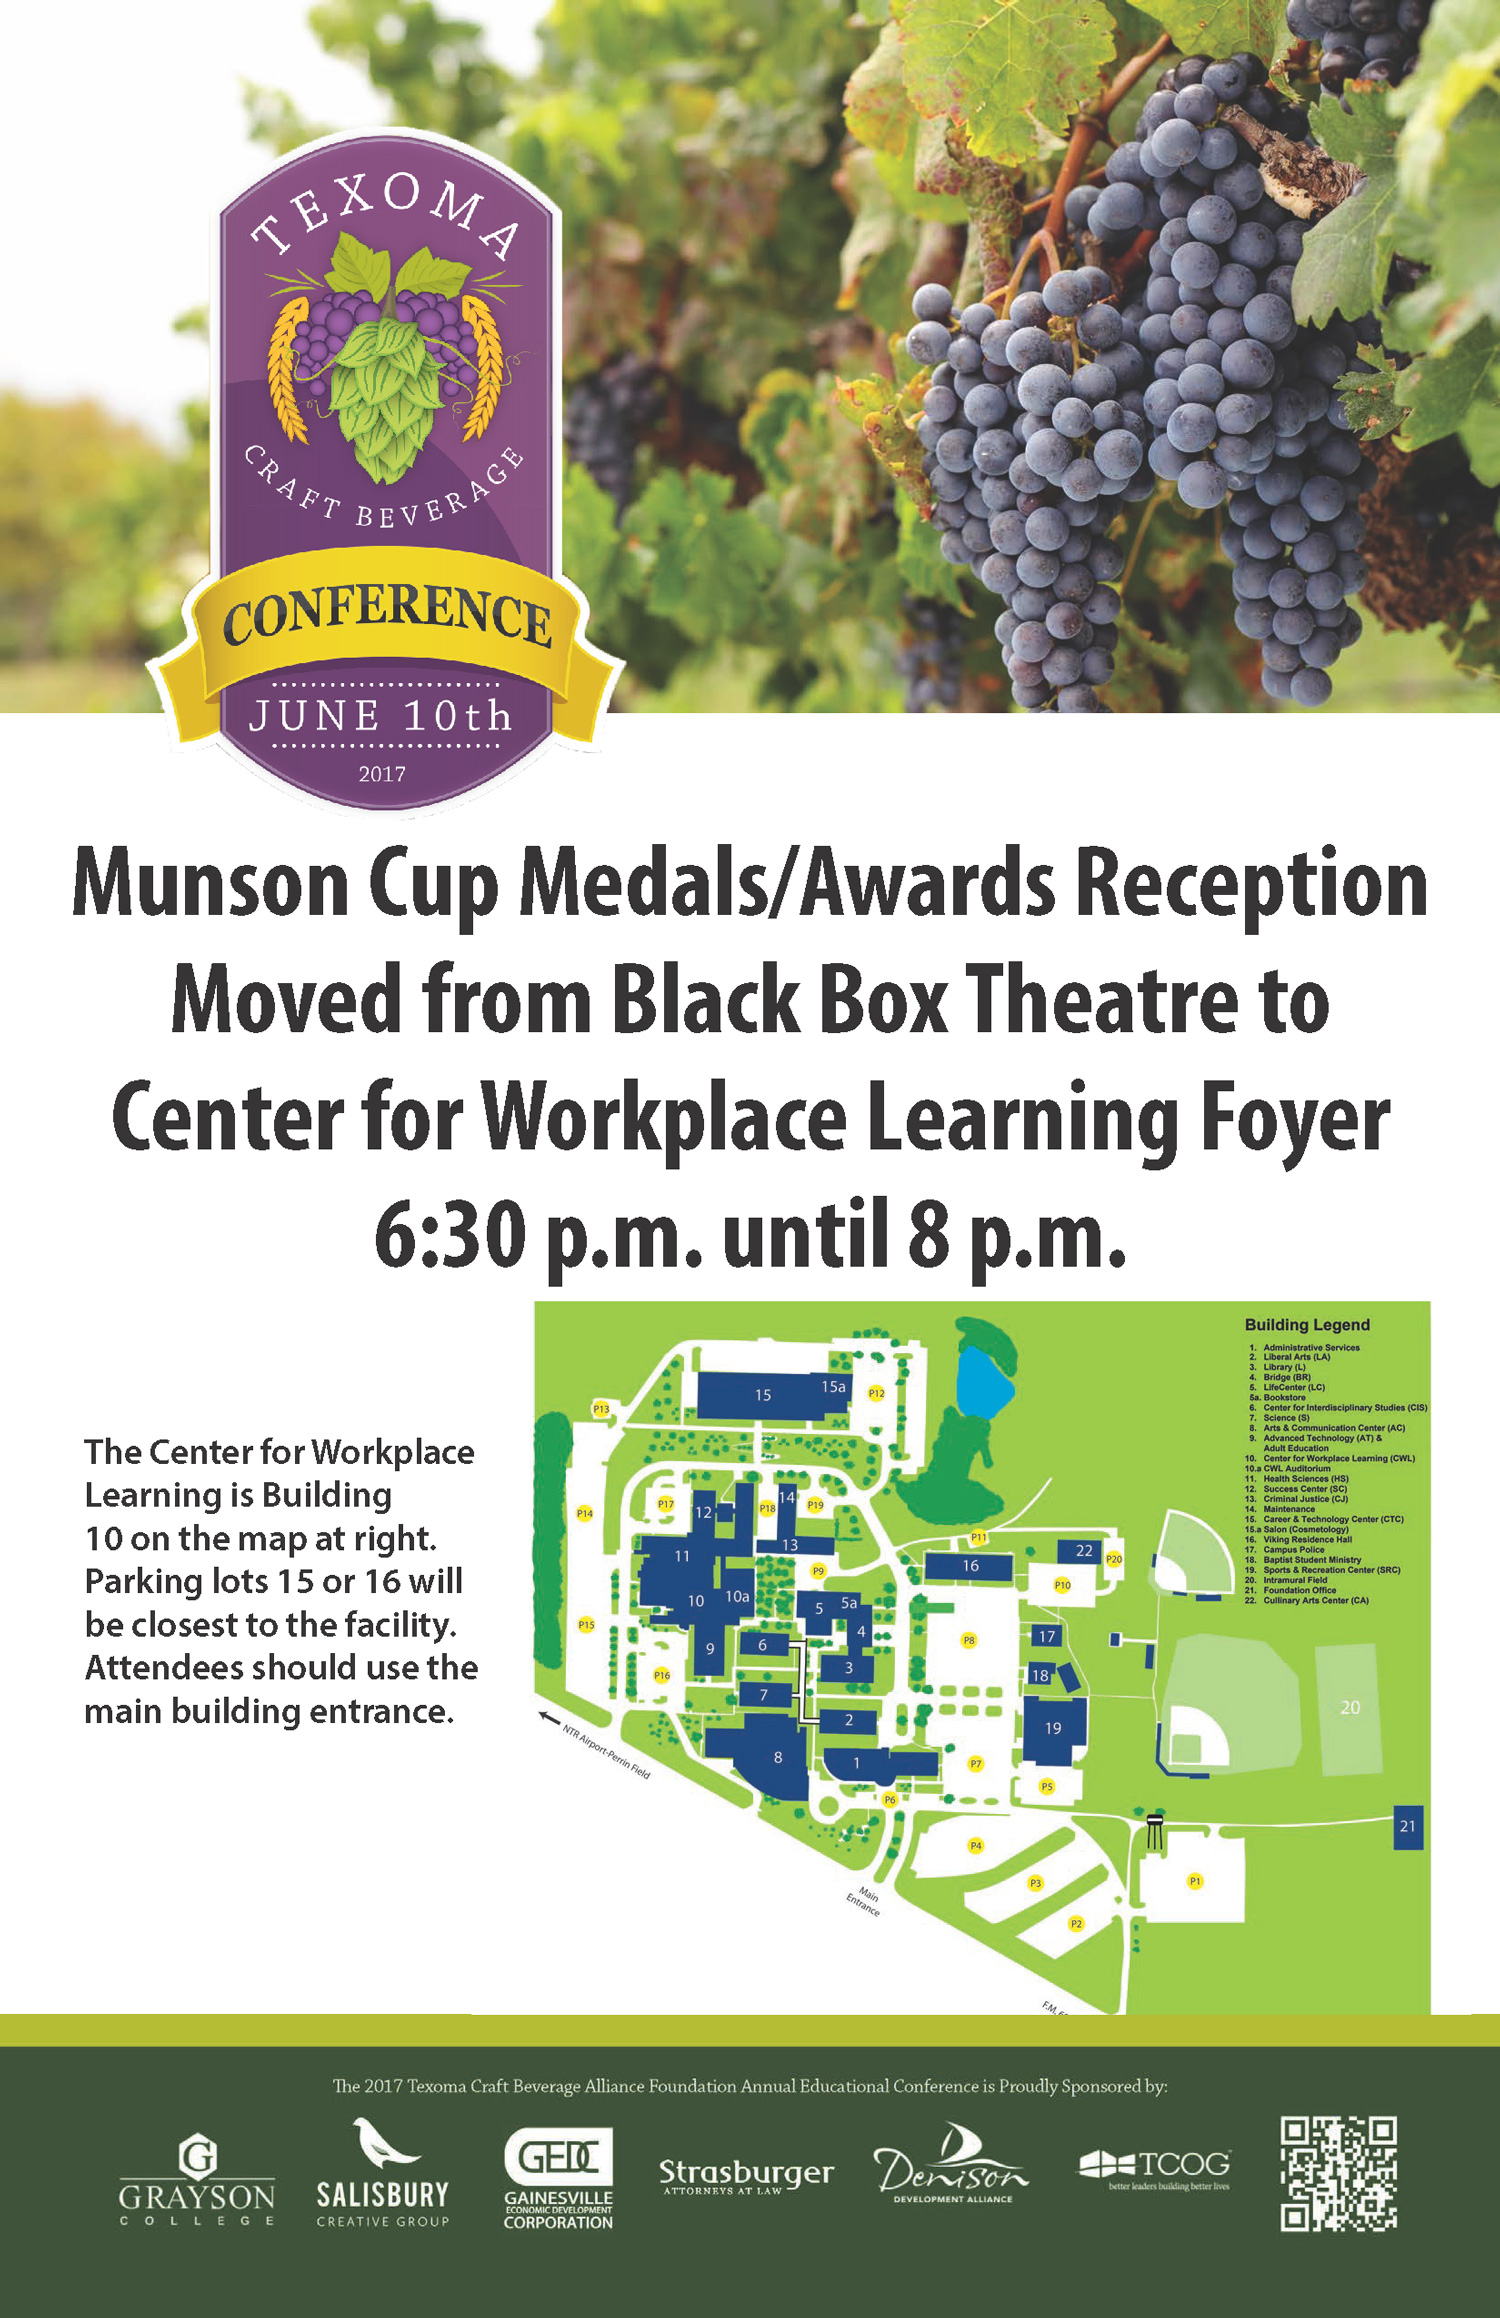 The 2017 TV Munson Cup Non-Commercial Wine Awards location has been moved from the Black Box Theatre to Center for Workplace Learning Foyer